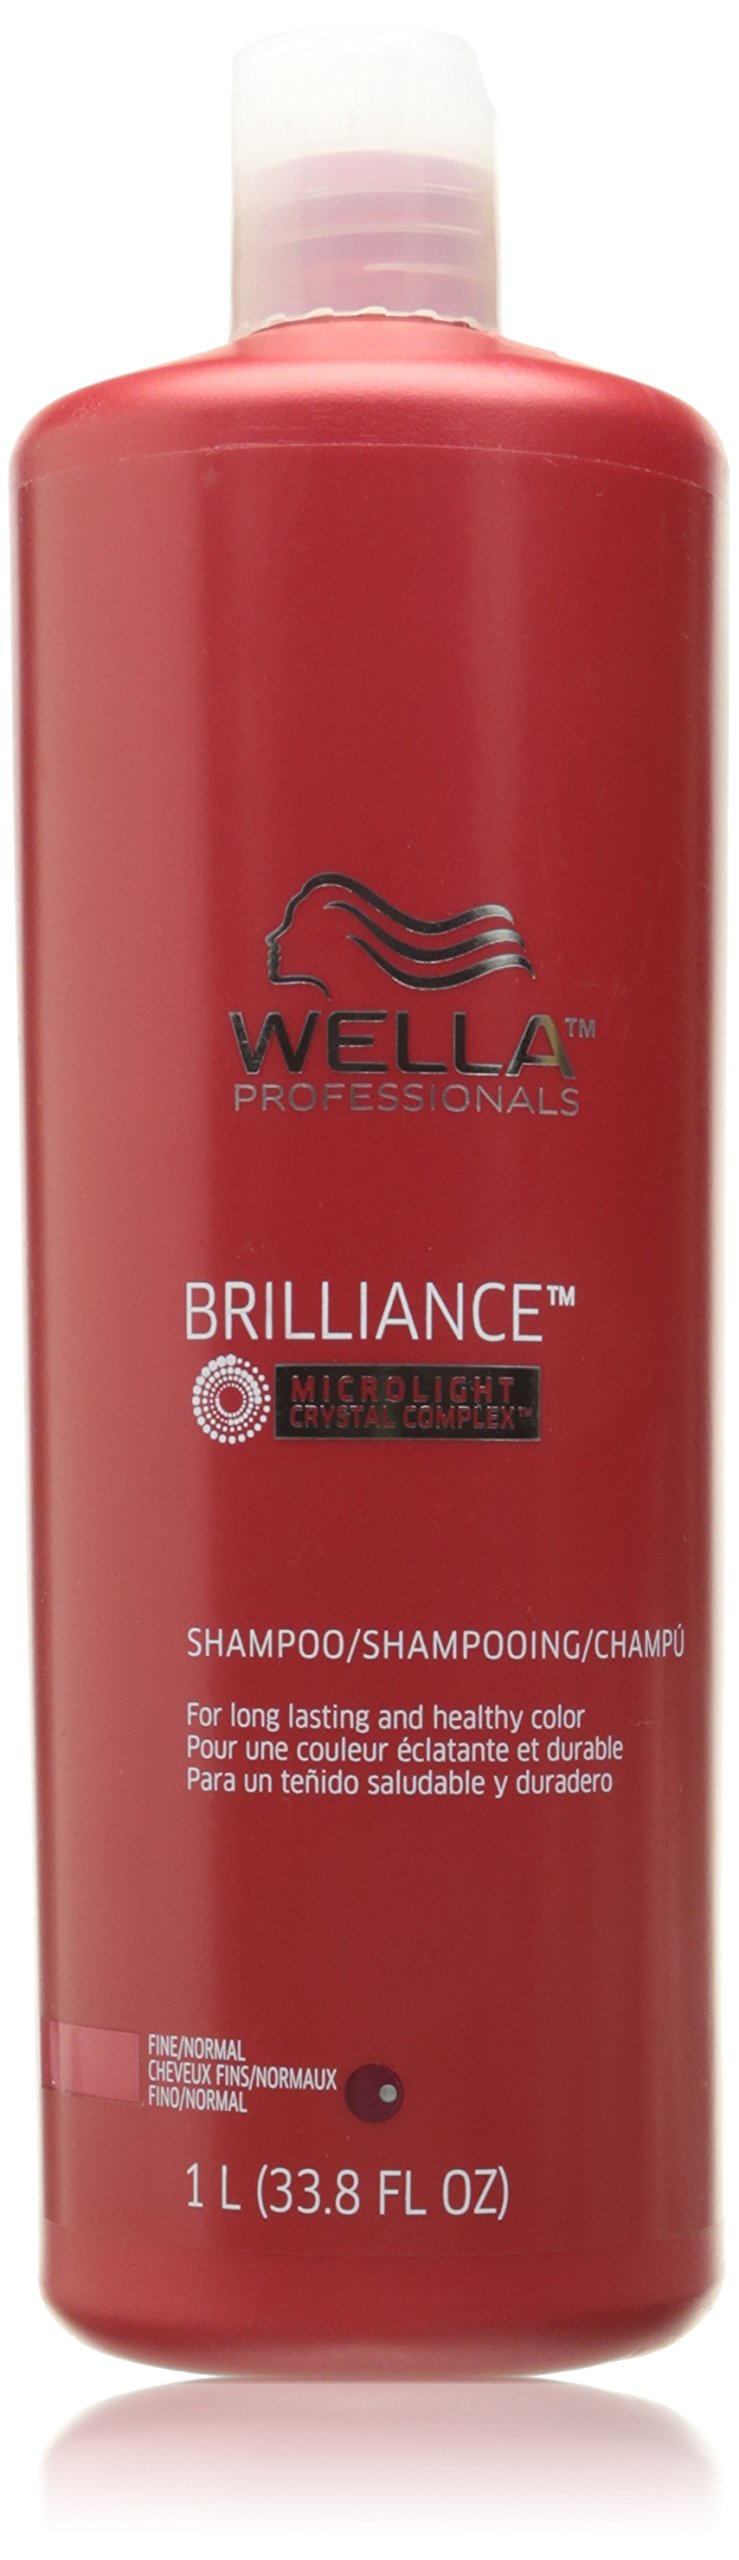 Wella Professionals Brilliance Shampoo for Fine to Normal Colored Hair - 33.8 oz/liter